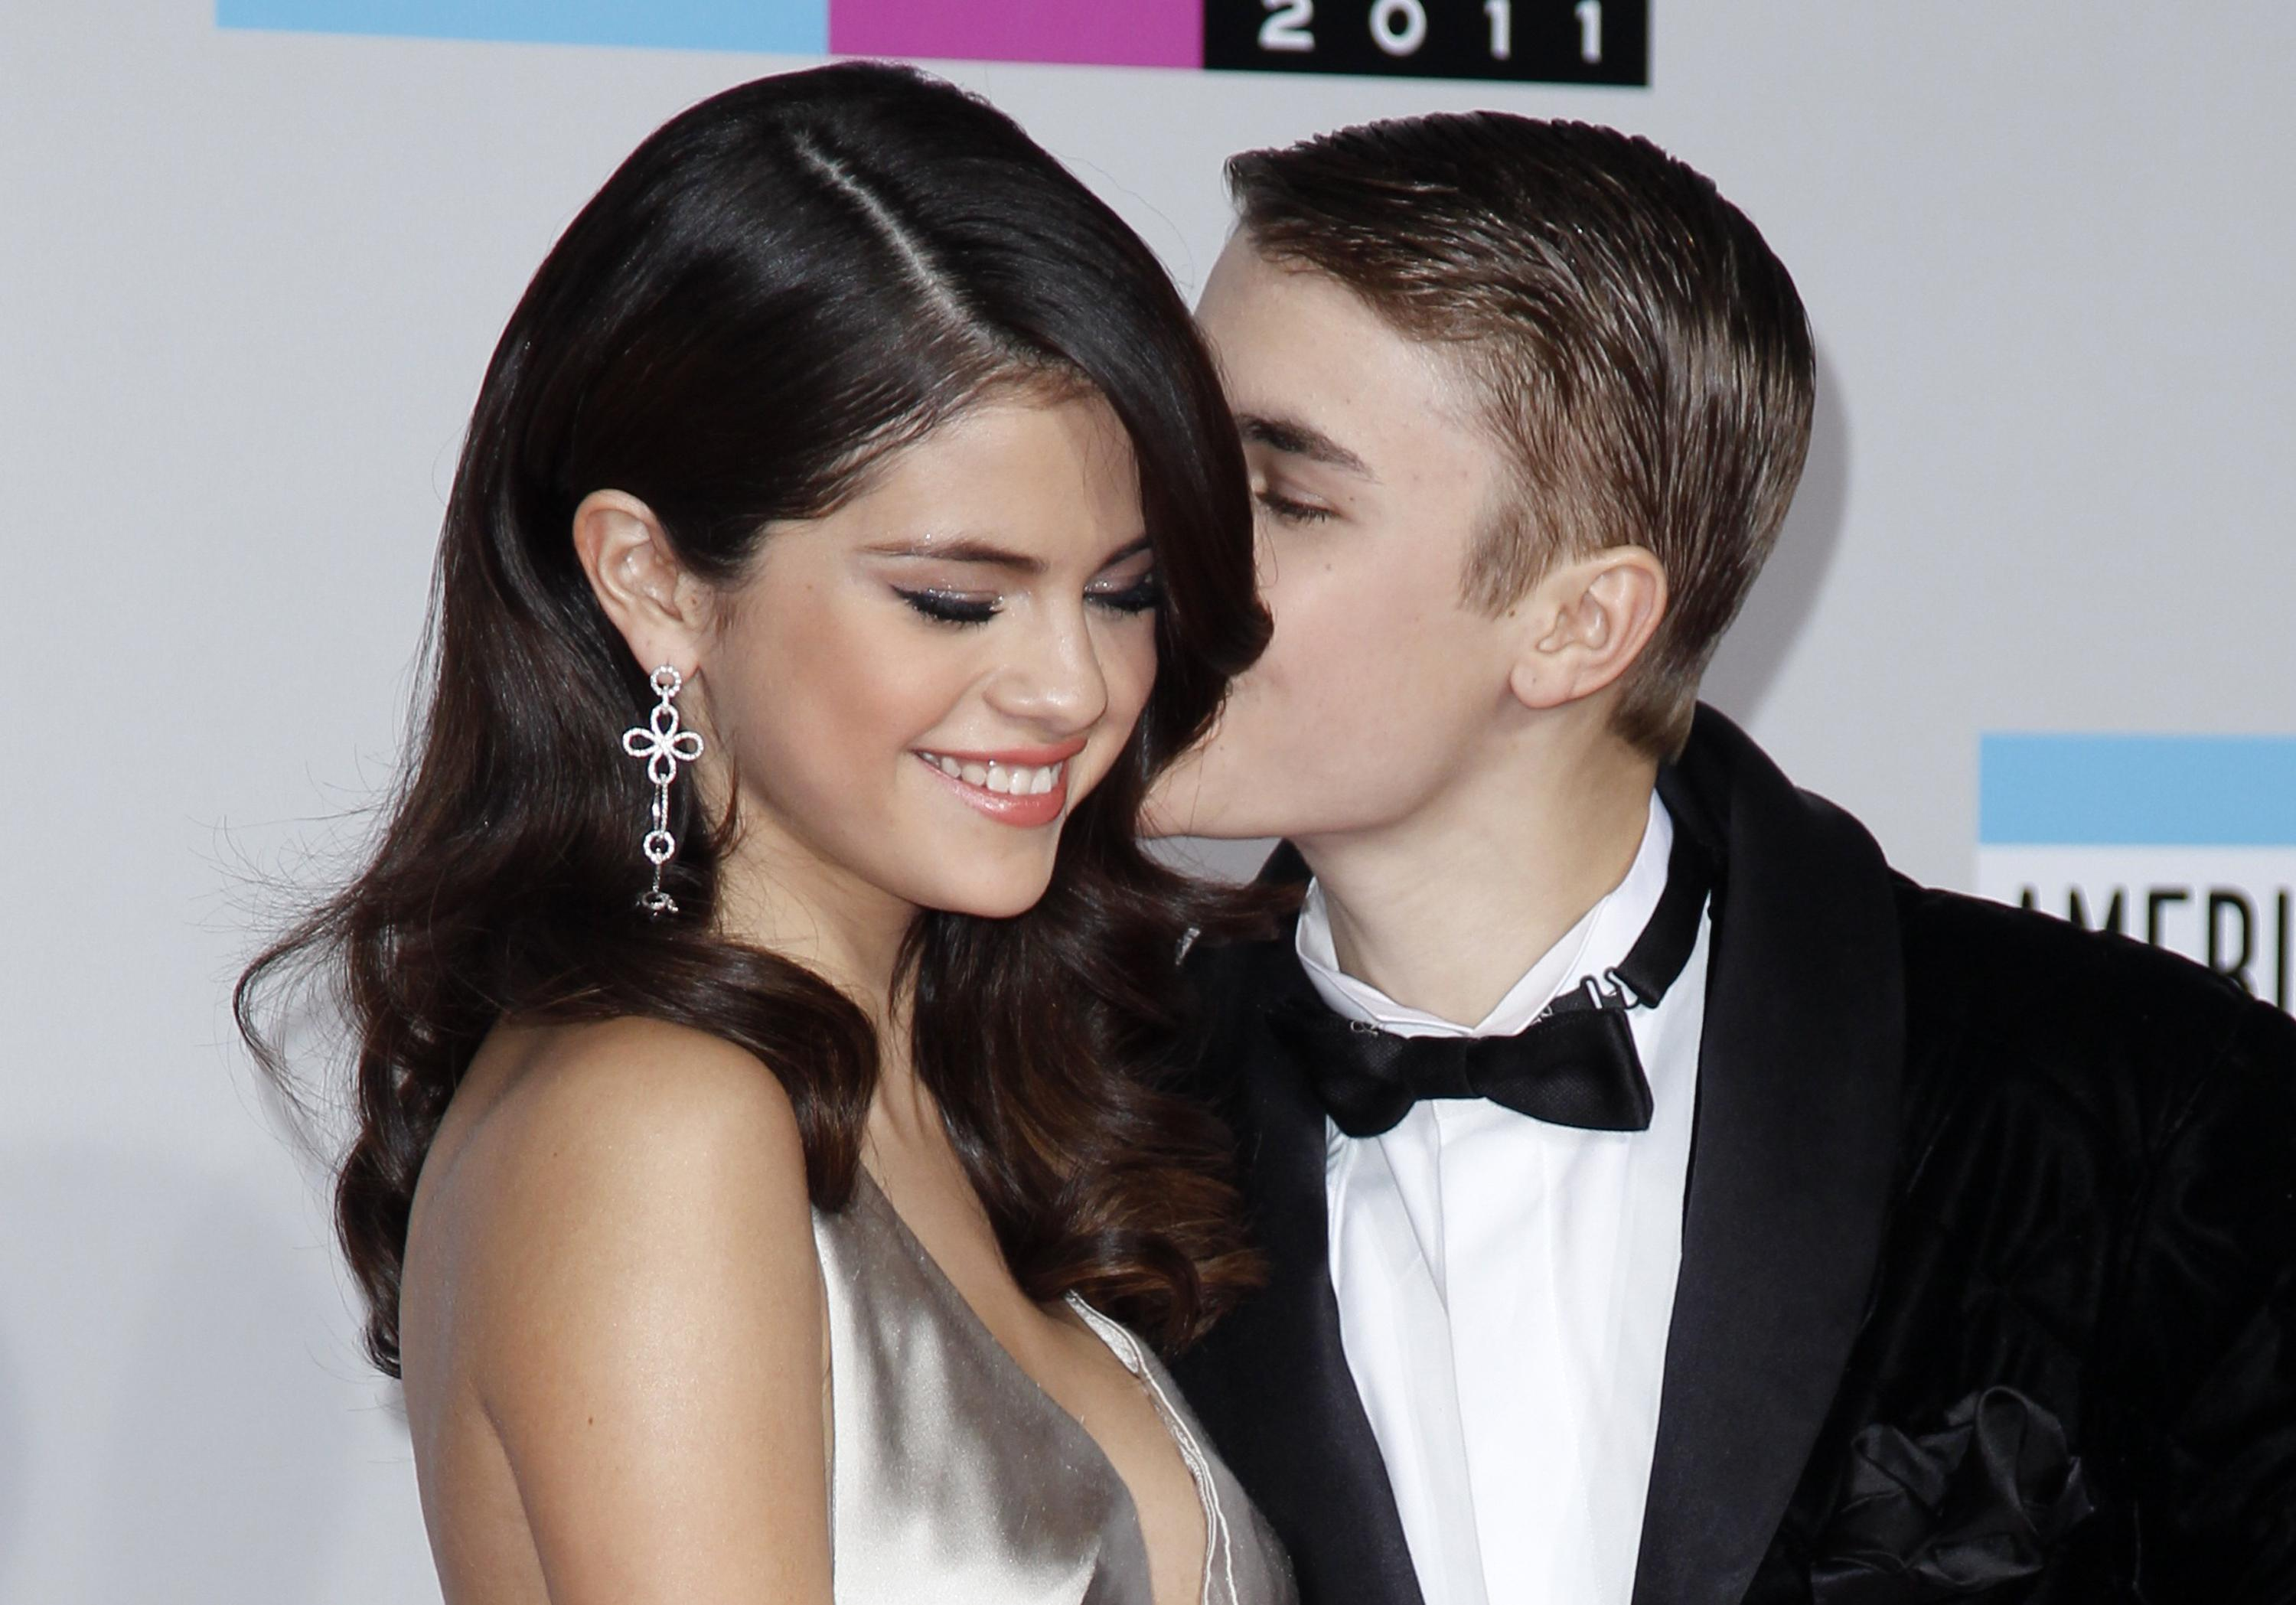 Selena Gomez's Mom Hospitalized Over Her Daughter's Reunion With Justin Bieber